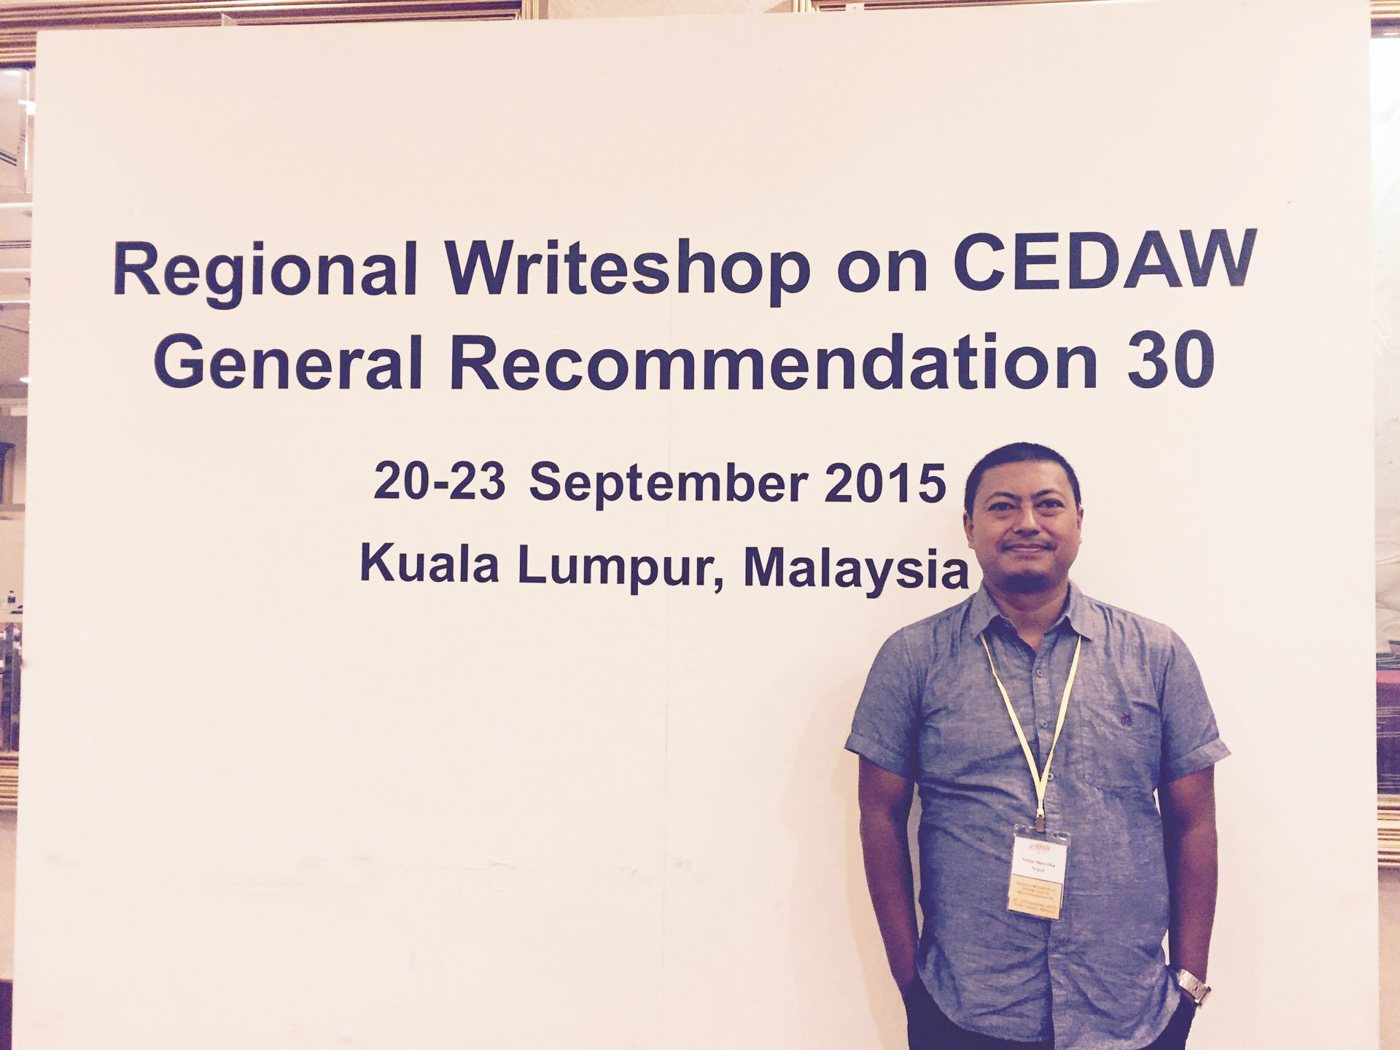 Advocate Sabin Shrestha, Executive Director of FWLD participating in the Regional Writeshop on CEDAW in September 2015